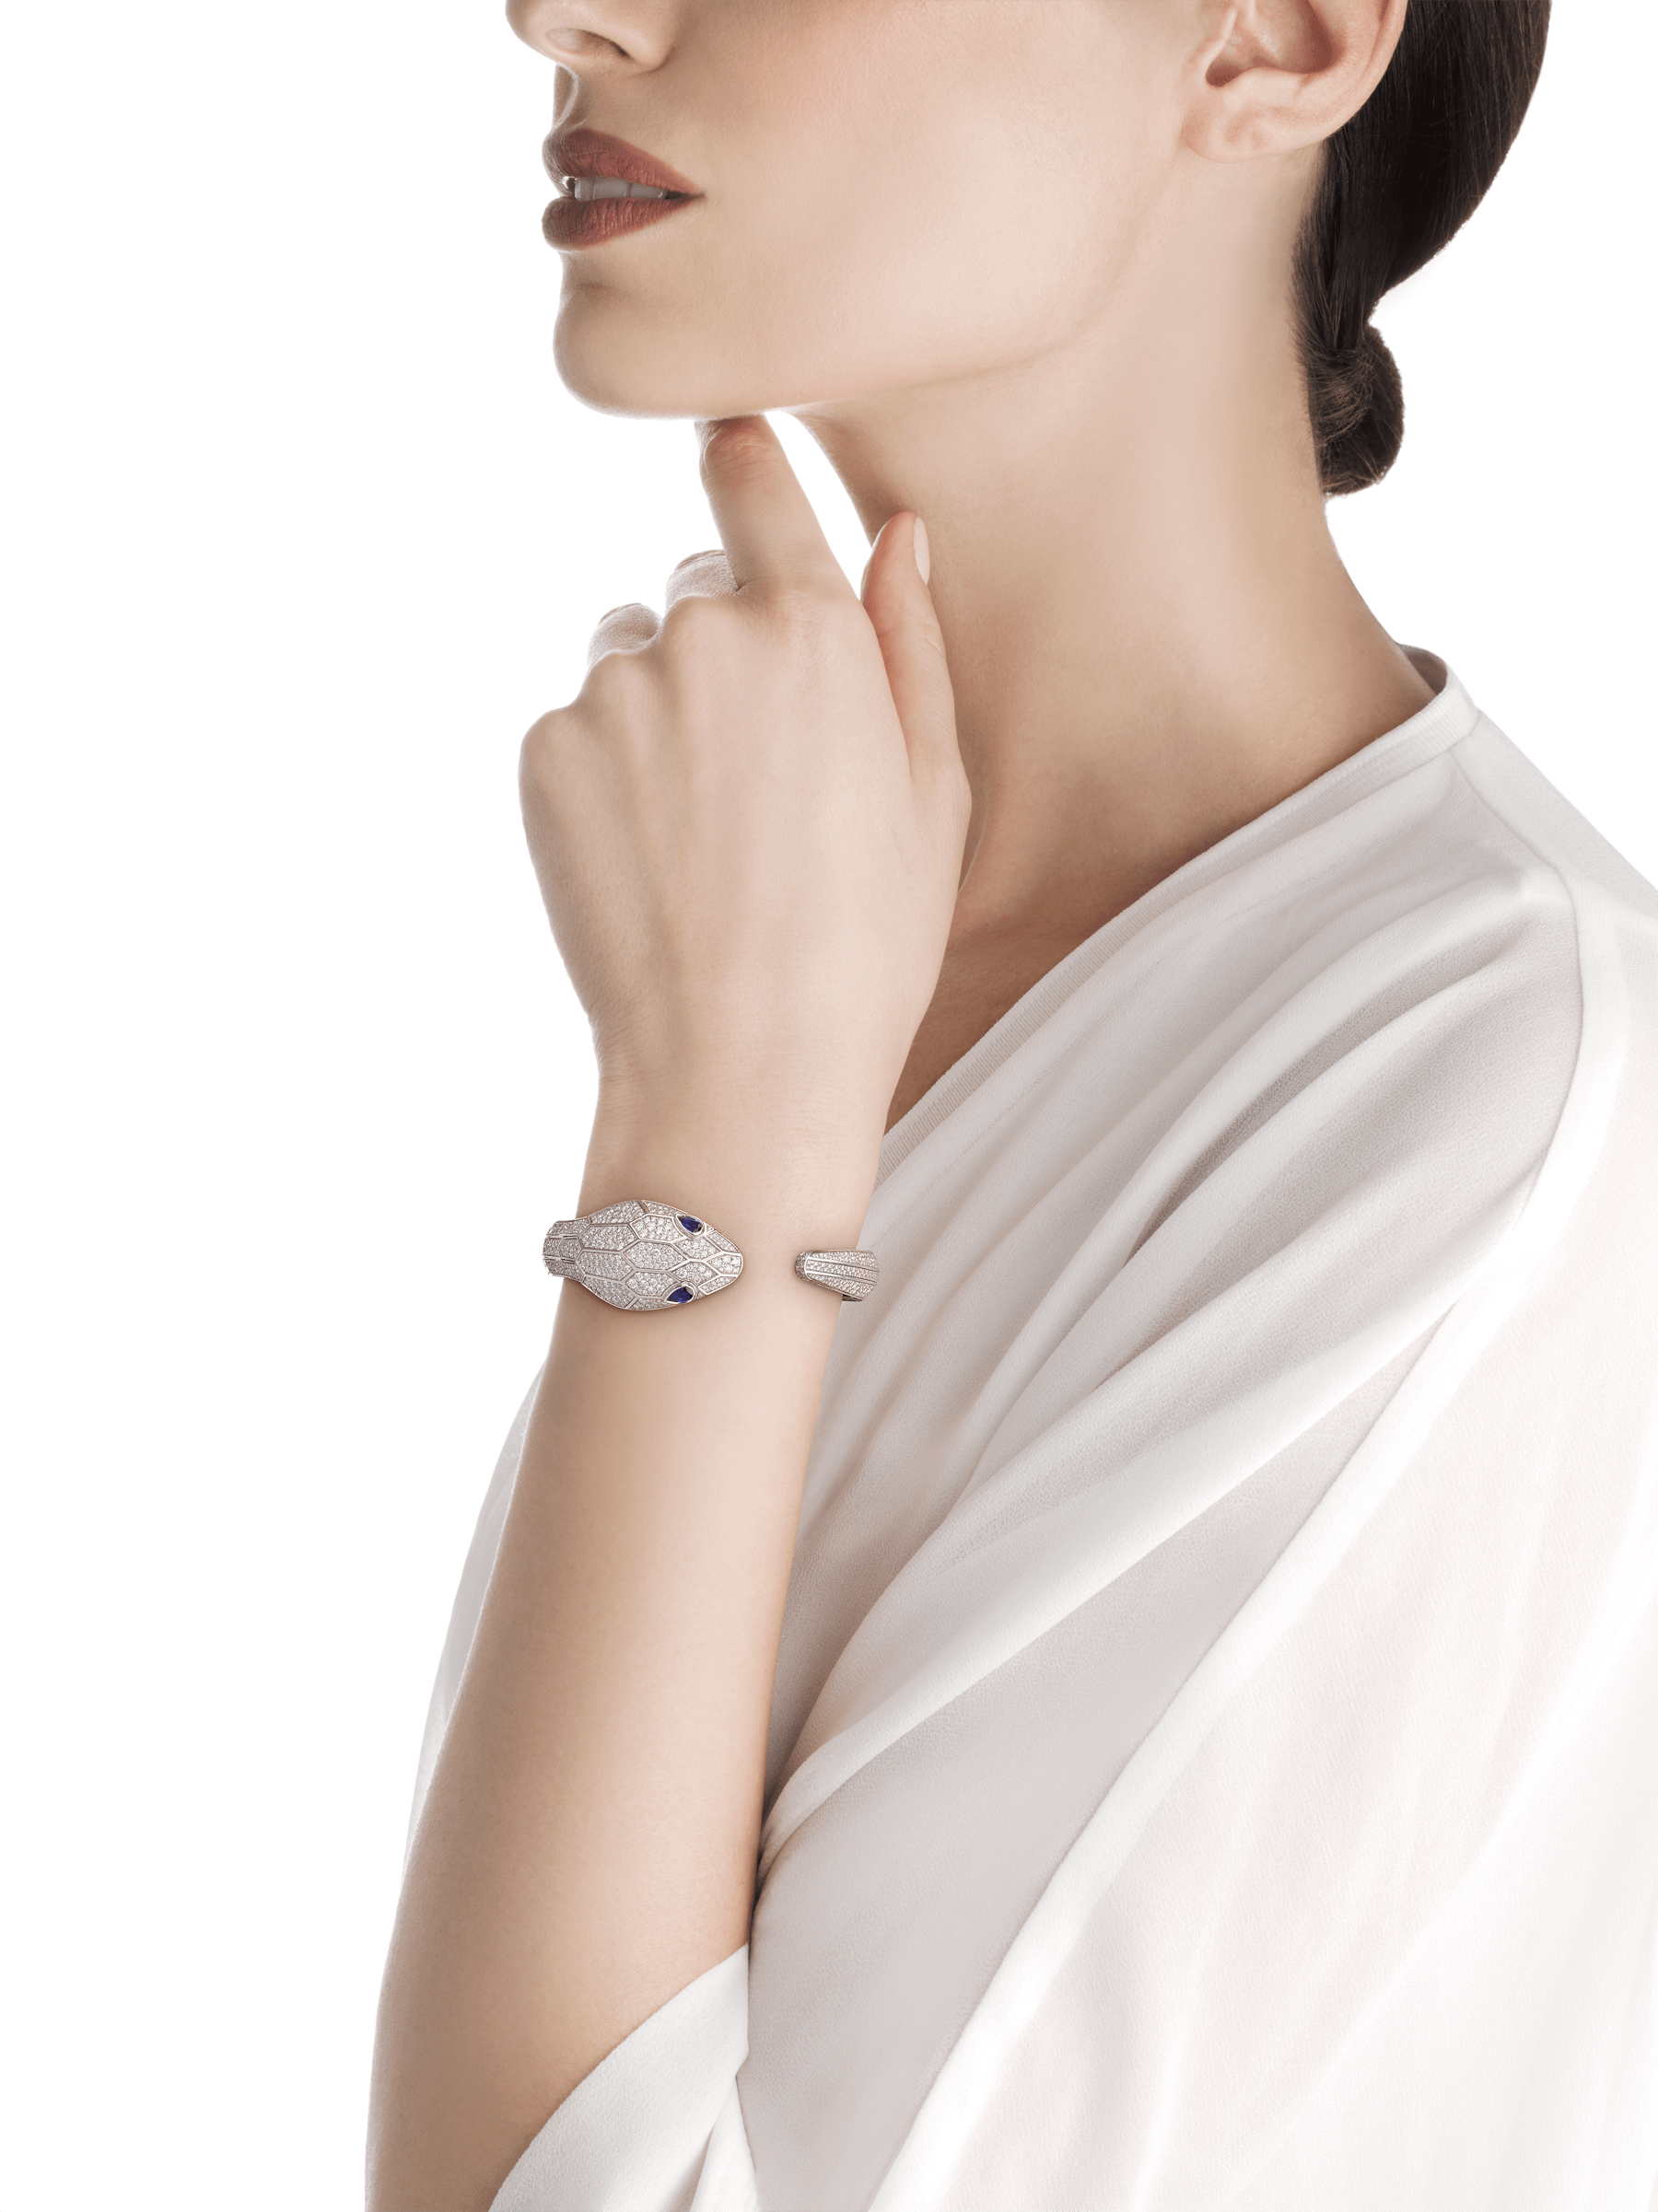 Serpenti Misteriosi Secret Watch in 18 kt white gold case and bangle bracelet, both set with round brilliant-cut diamonds, diamond full pavé dial and pear-shaped sapphire eyes. Small size 102989 image 4